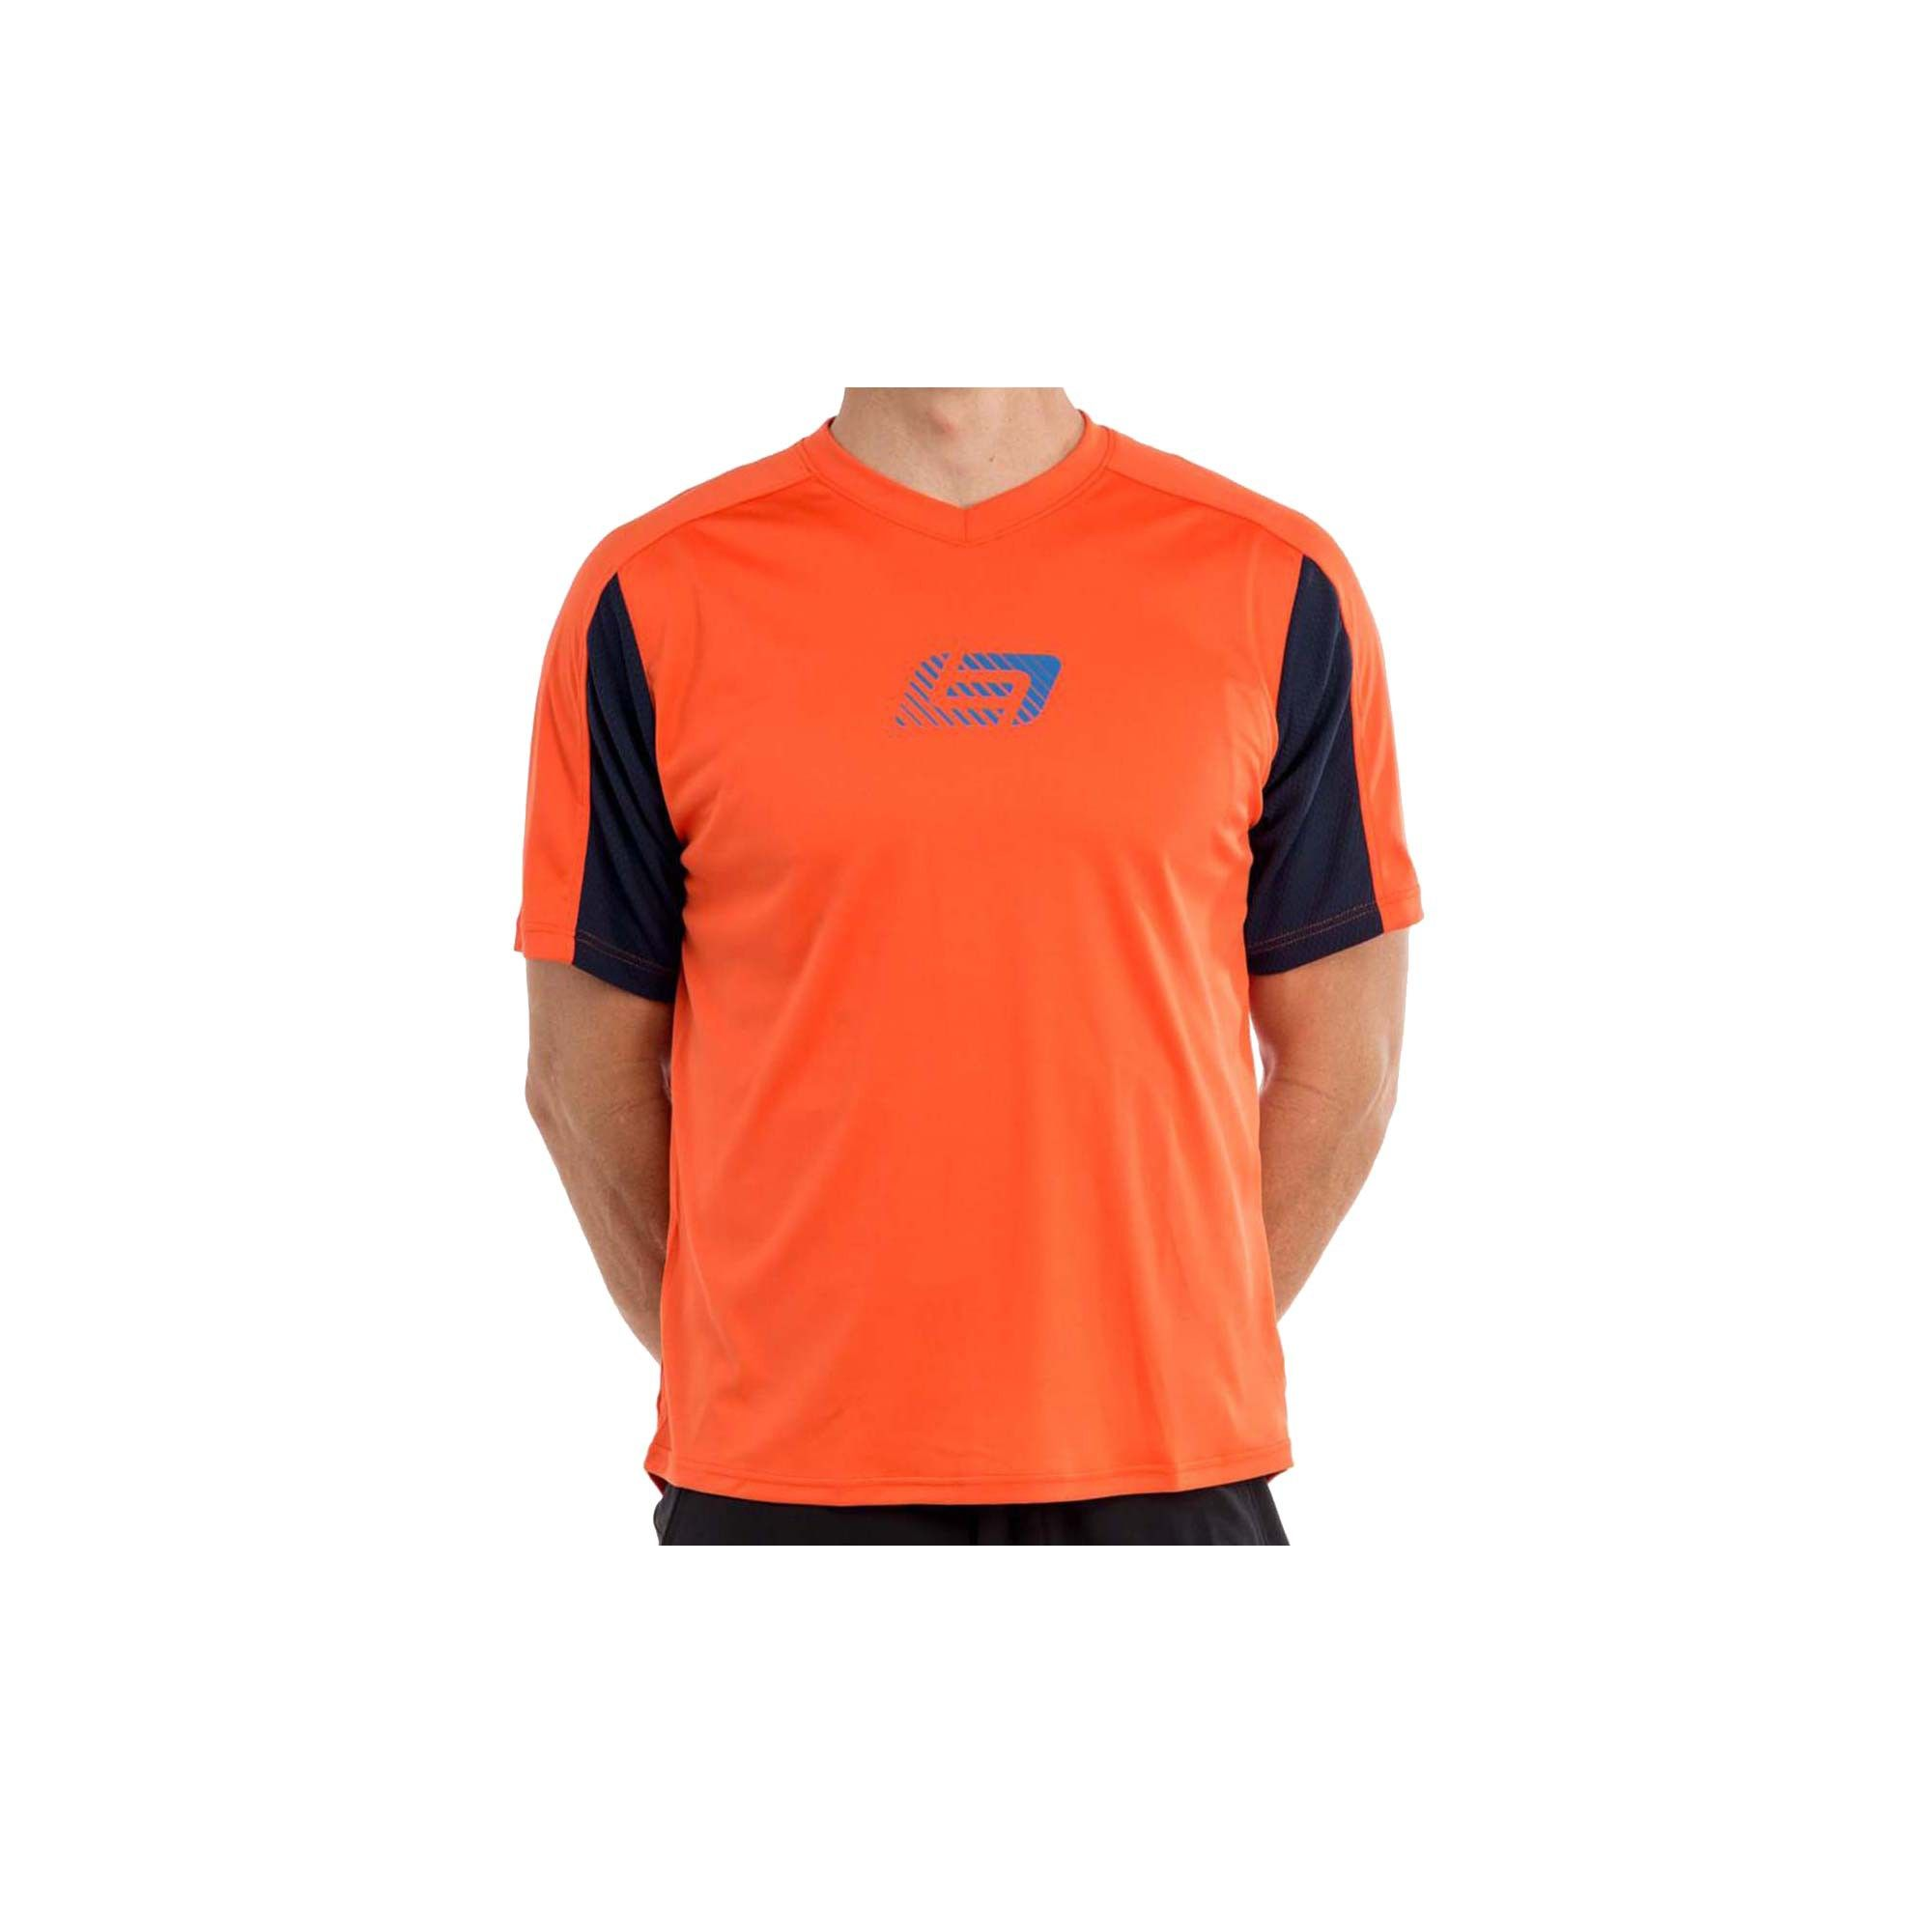 Bellwether Apex Men/'s Cycling Jersey